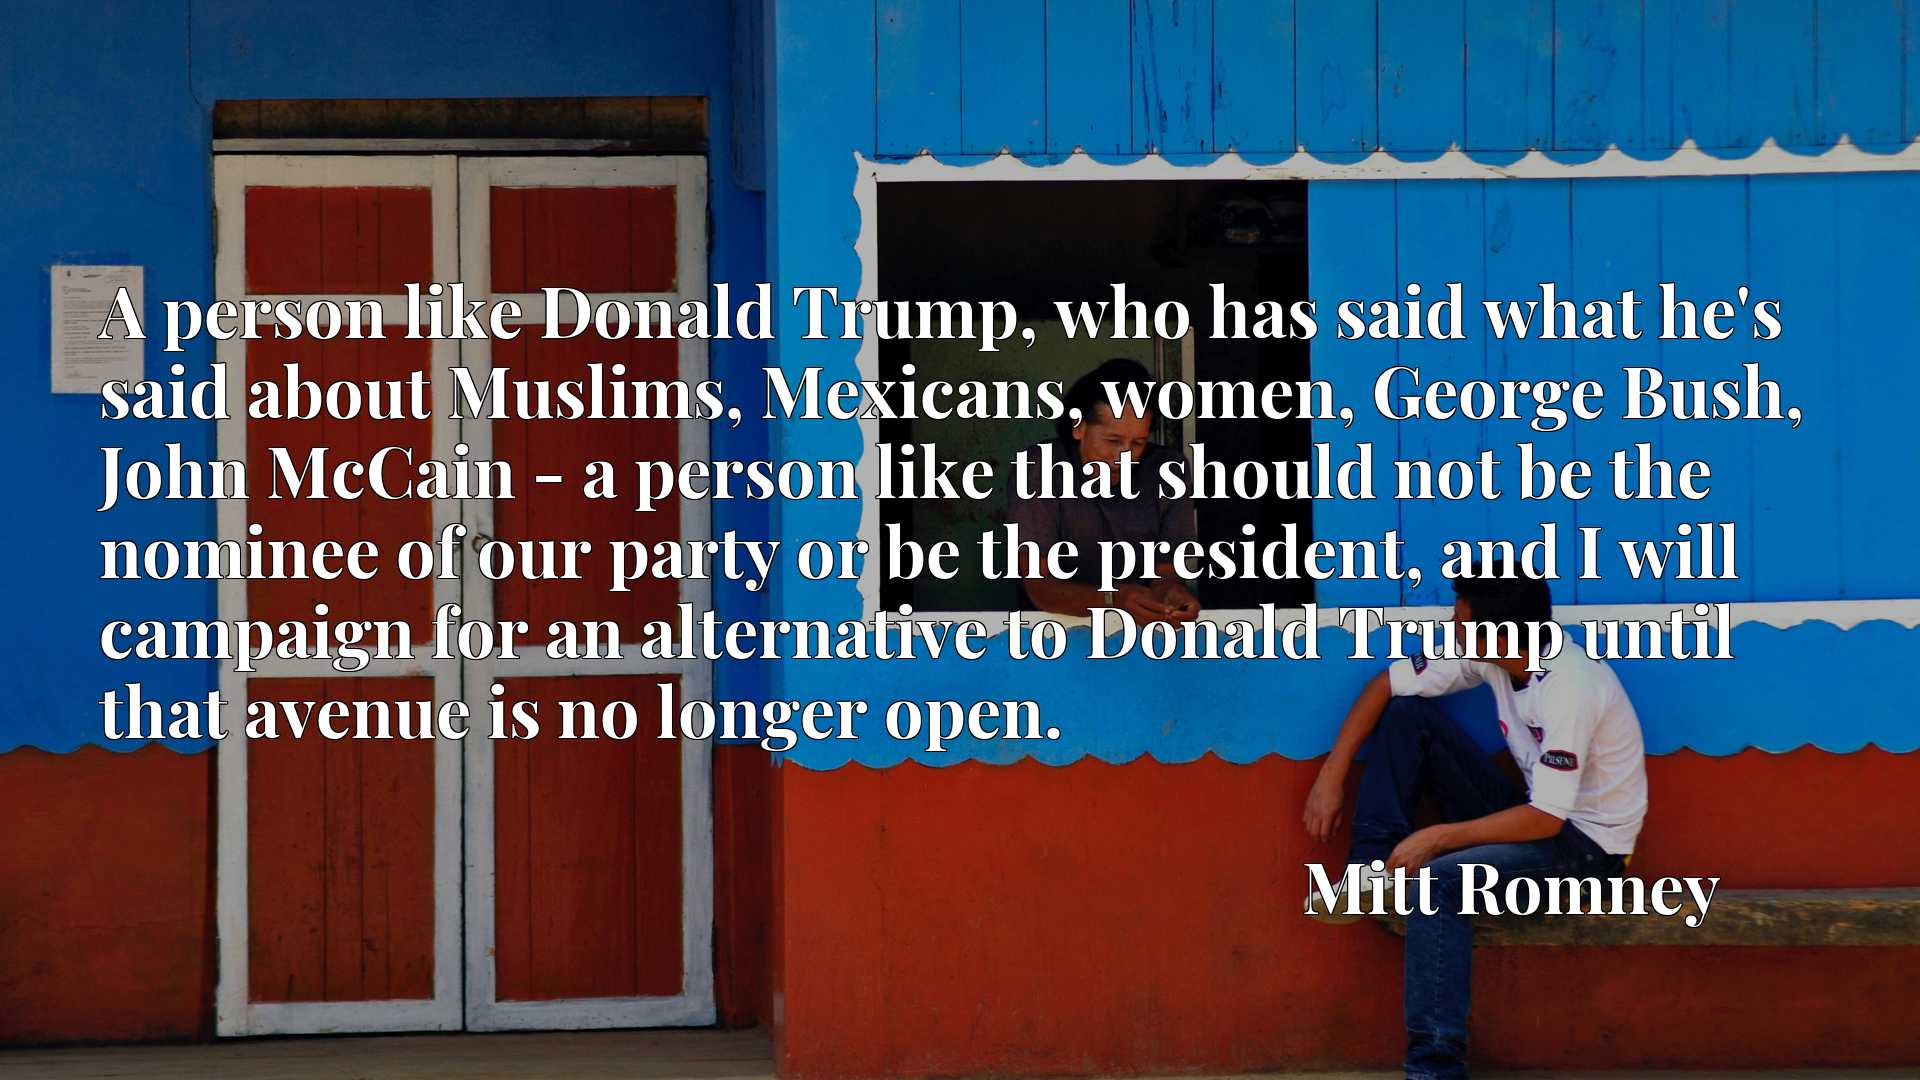 A person like Donald Trump, who has said what he's said about Muslims, Mexicans, women, George Bush, John McCain - a person like that should not be the nominee of our party or be the president, and I will campaign for an alternative to Donald Trump until that avenue is no longer open.